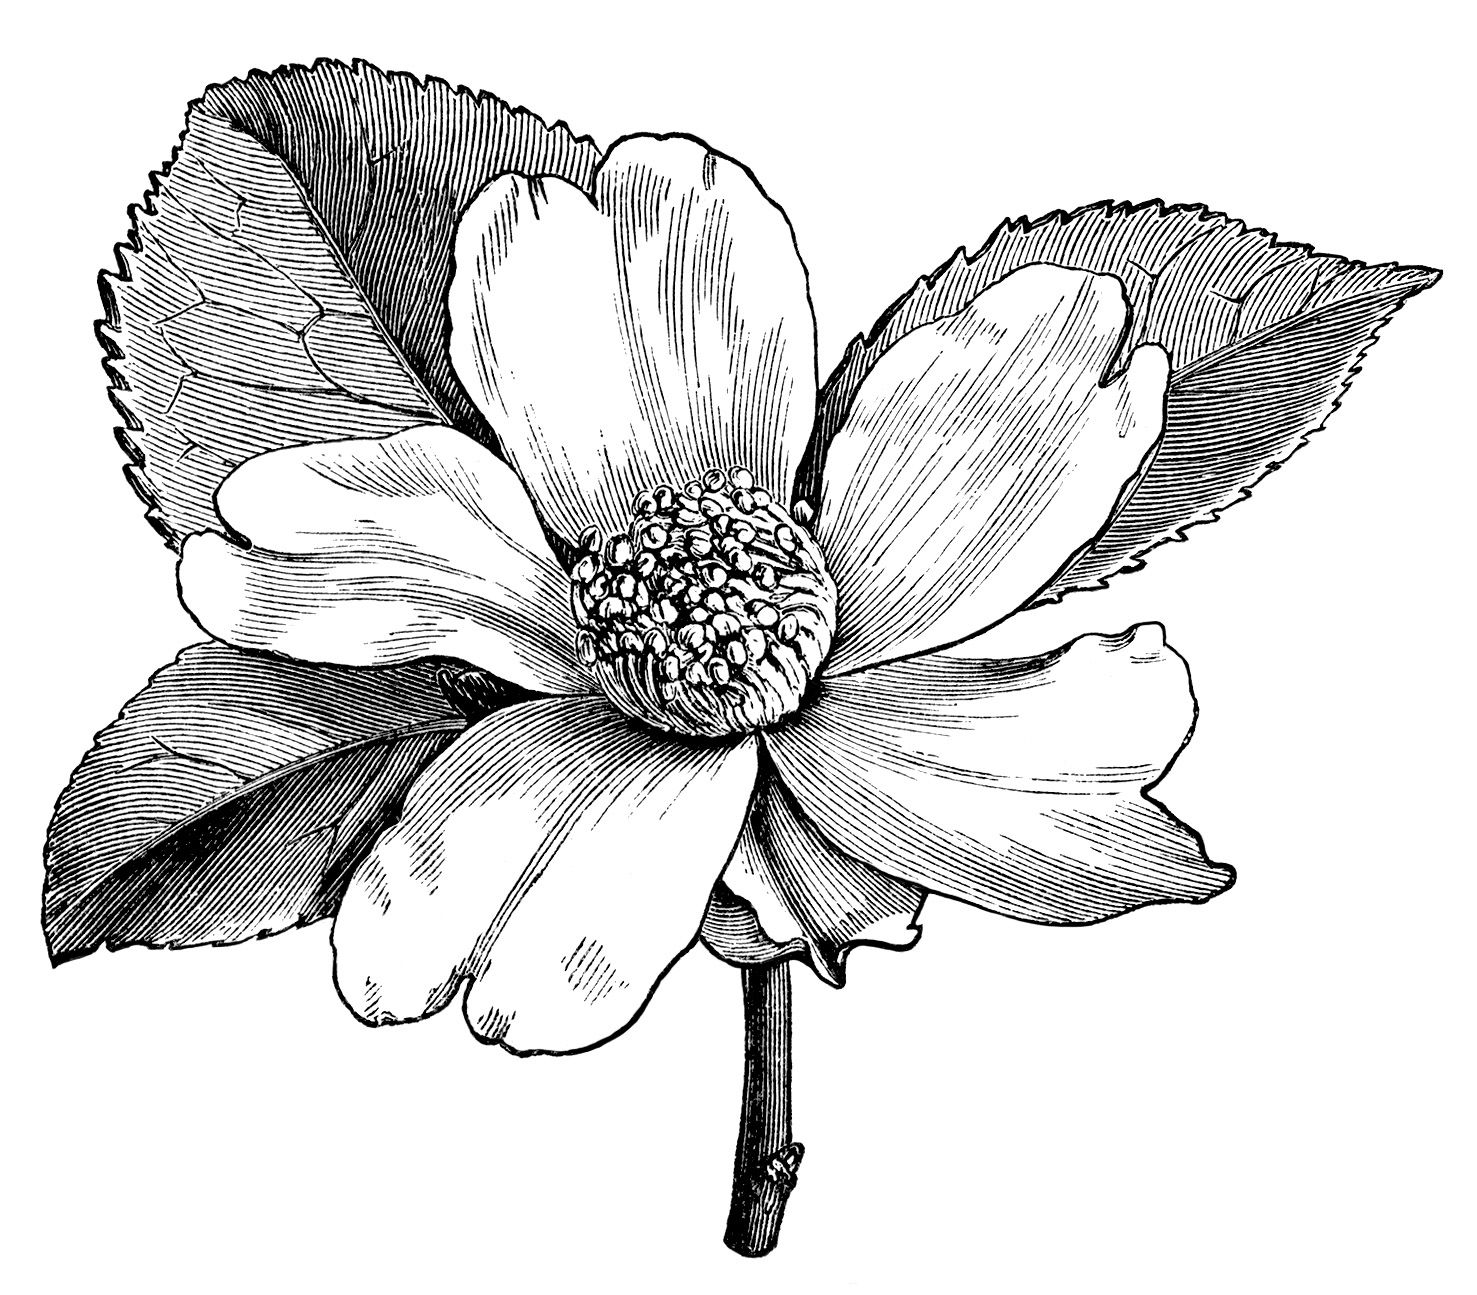 Camellia oleifera, camellia flower illustration, black and white ...